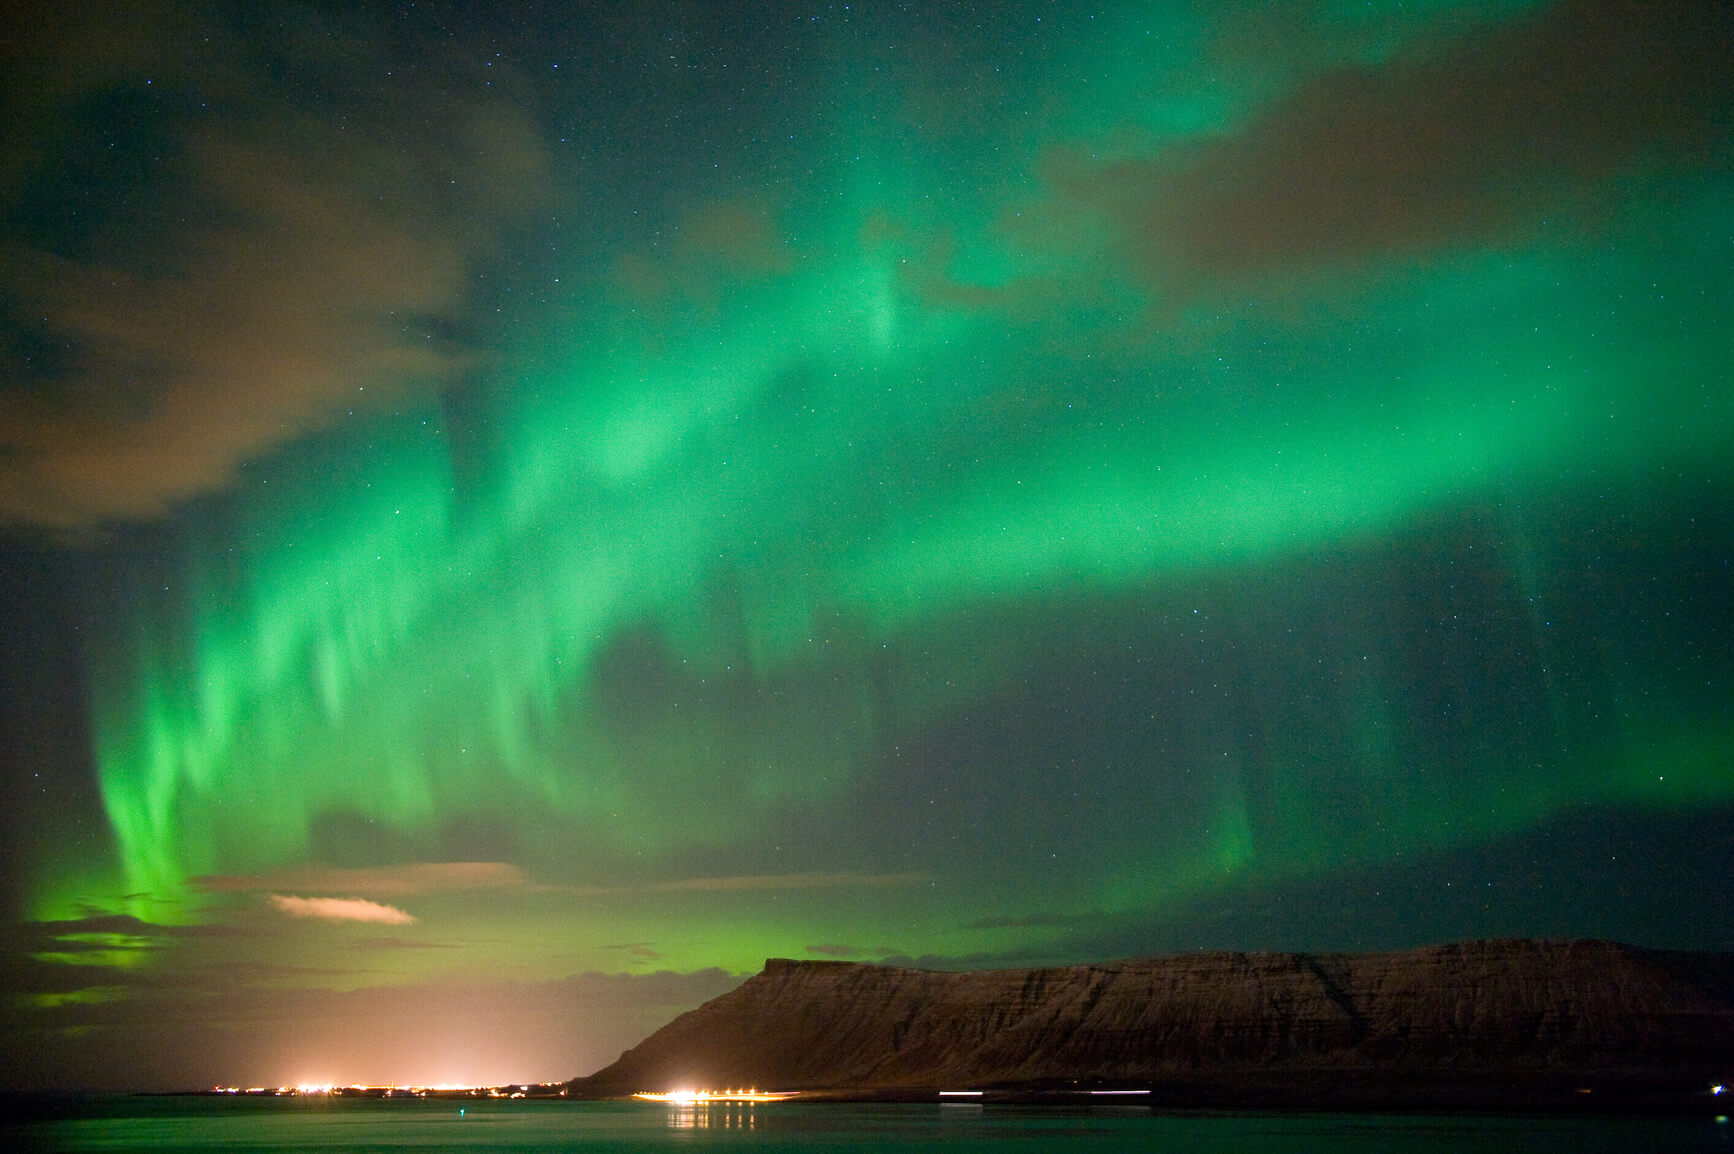 SUMMER: Washington DC to Reykjavik, Iceland for only $313 roundtrip